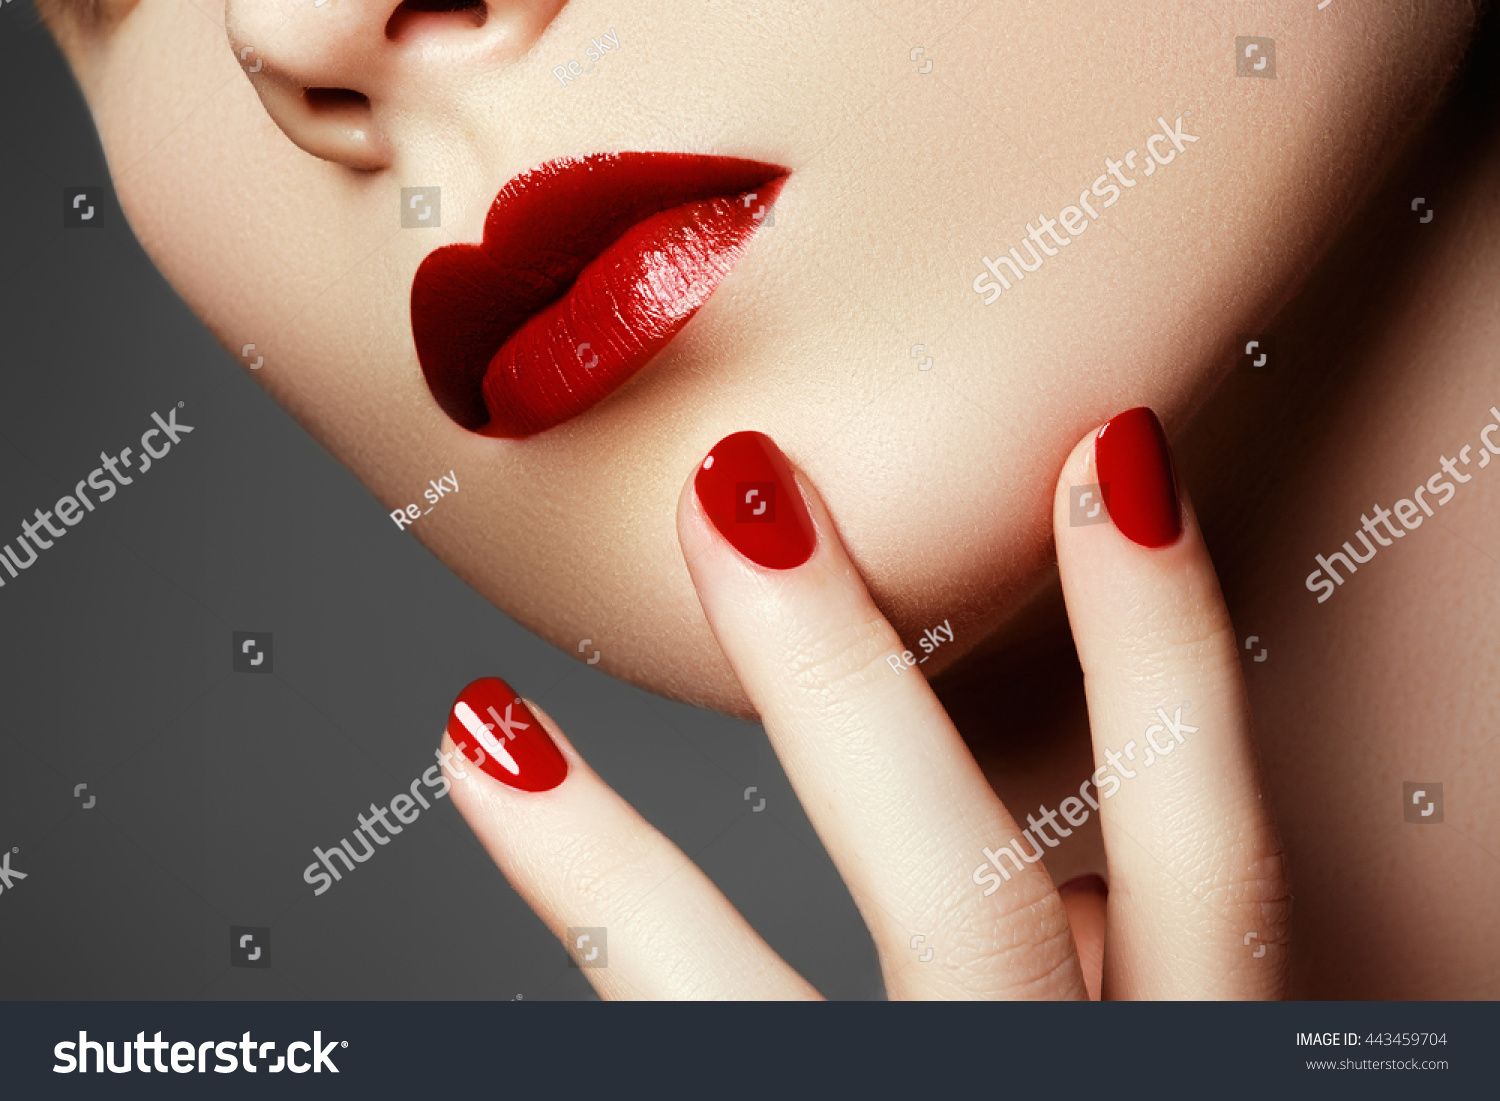 Beauty Fashion Model Face Manicured Hand Stock Photo & Image ...